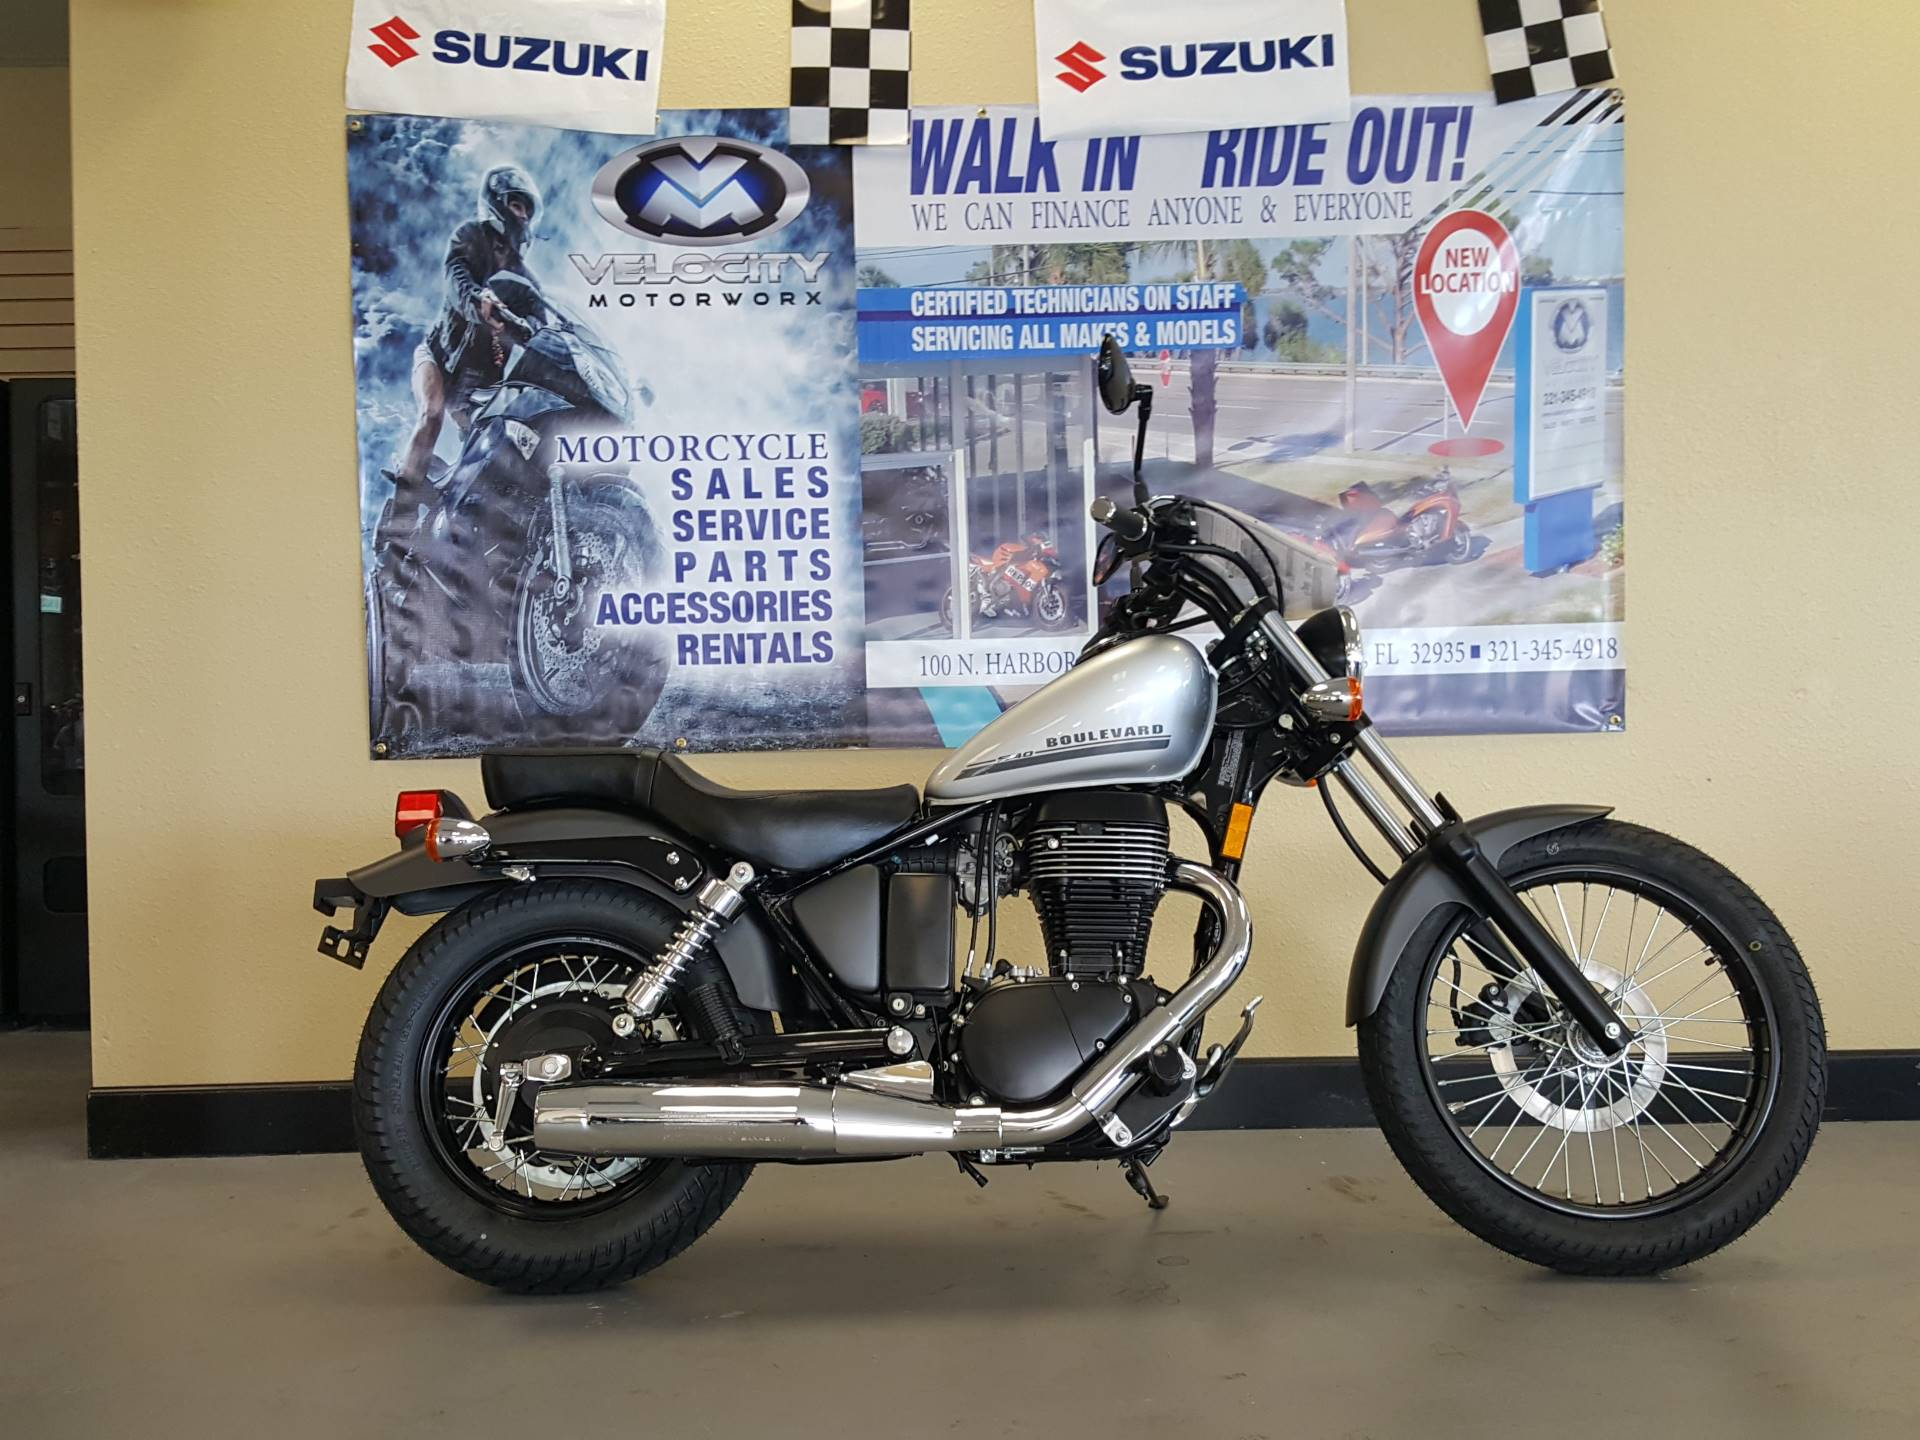 Suzuki Motorcycles In Melbourne Florida